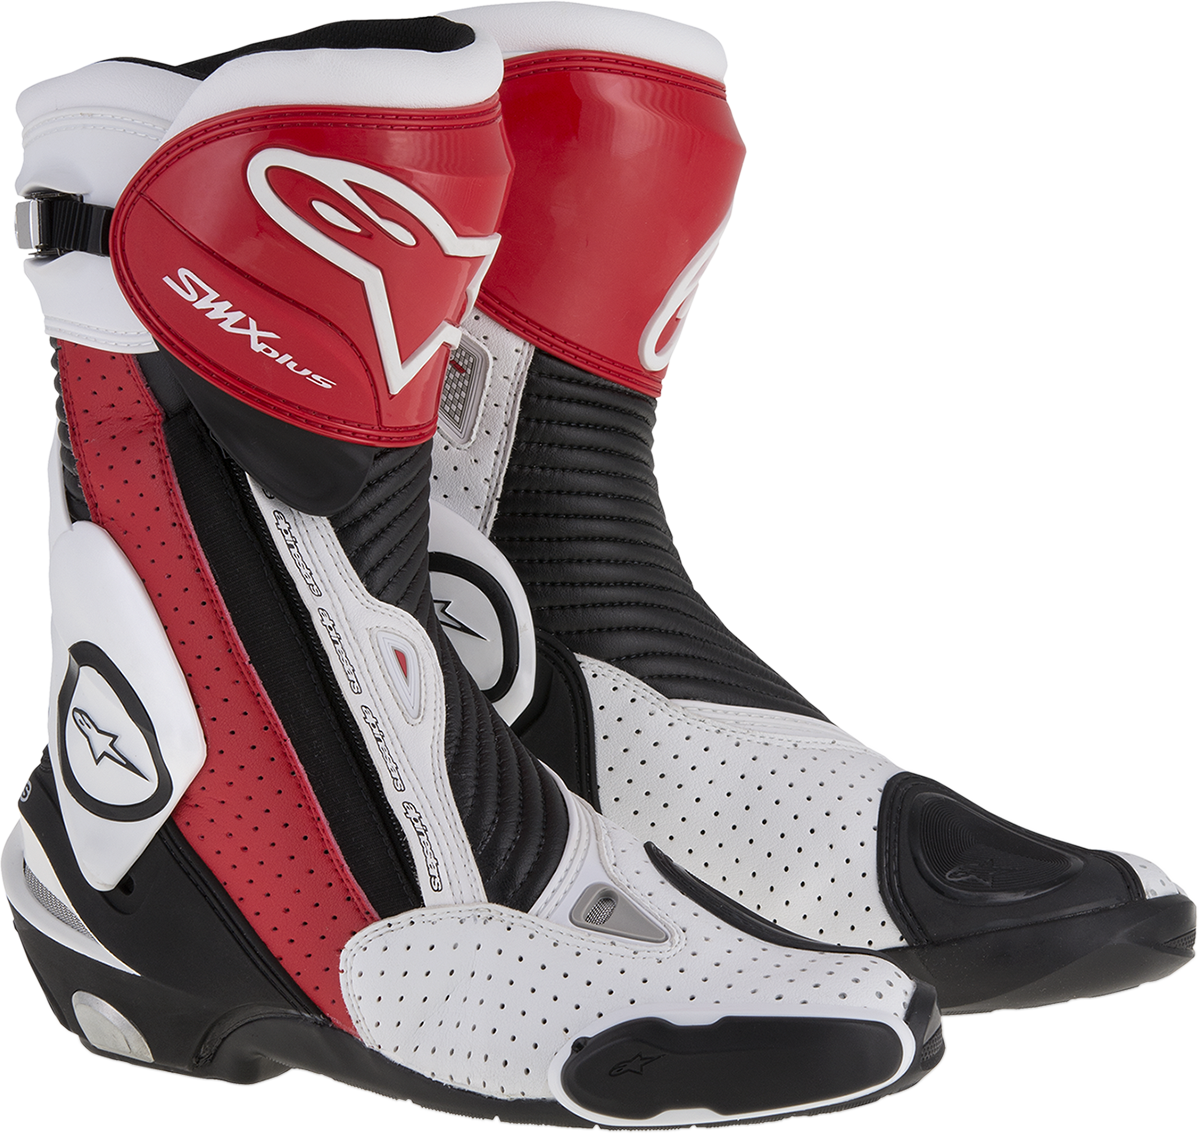 Alpinestars Mens Size 6 SMX Plus Vented Motorcycle Riding Street Racing Boots